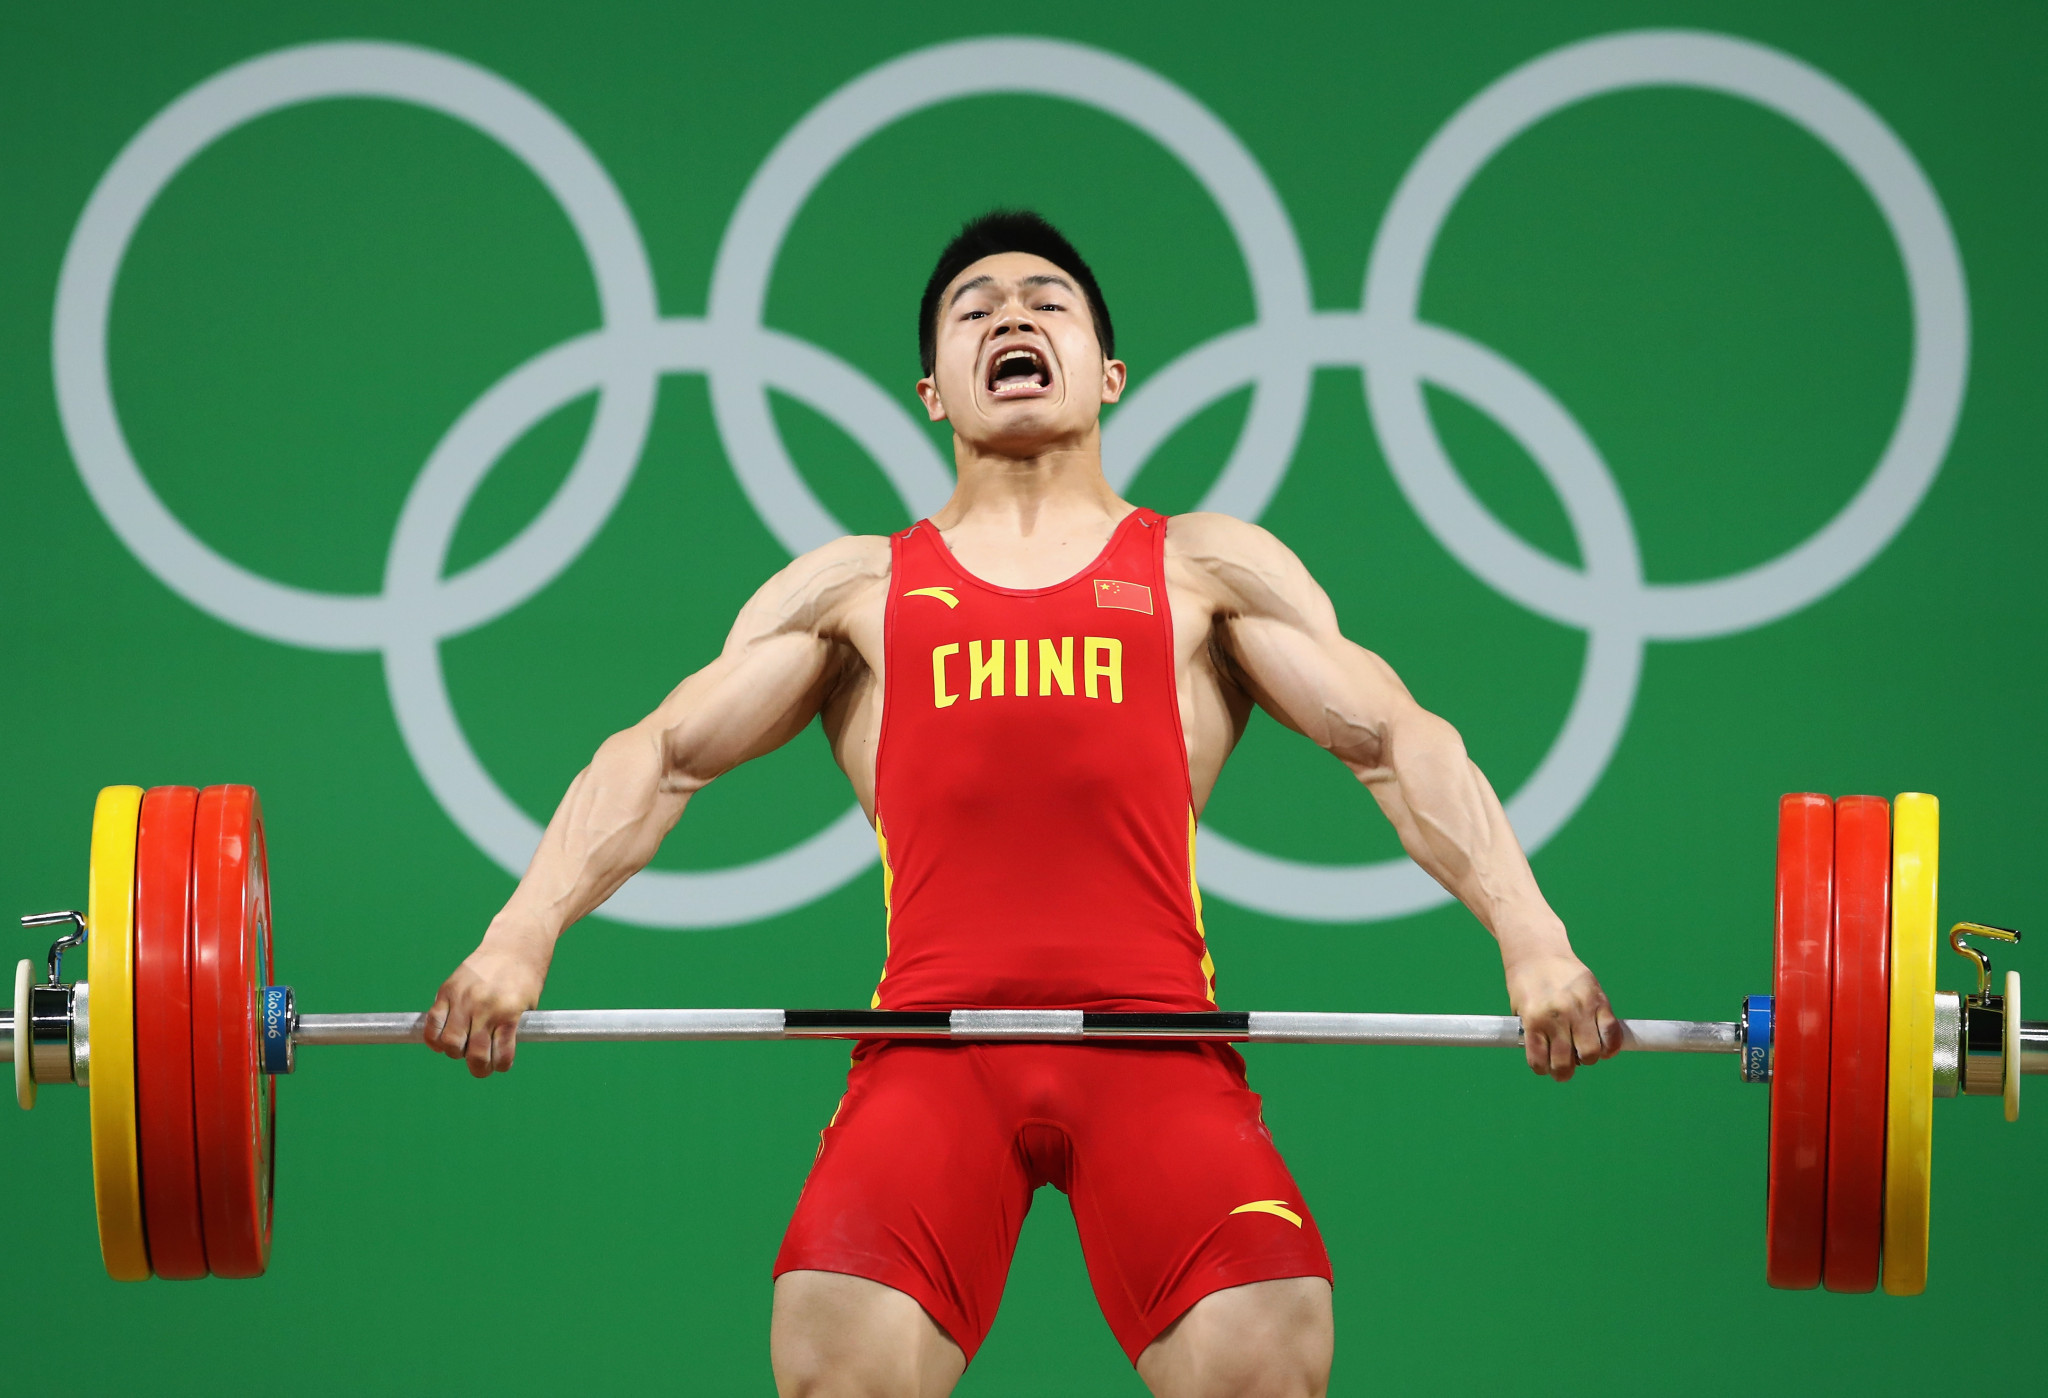 Zhiyong Shi, of China, competes during the men's 69kg Group A weightlifting contest at the Rio 2016 Olympic Games ©Getty Images